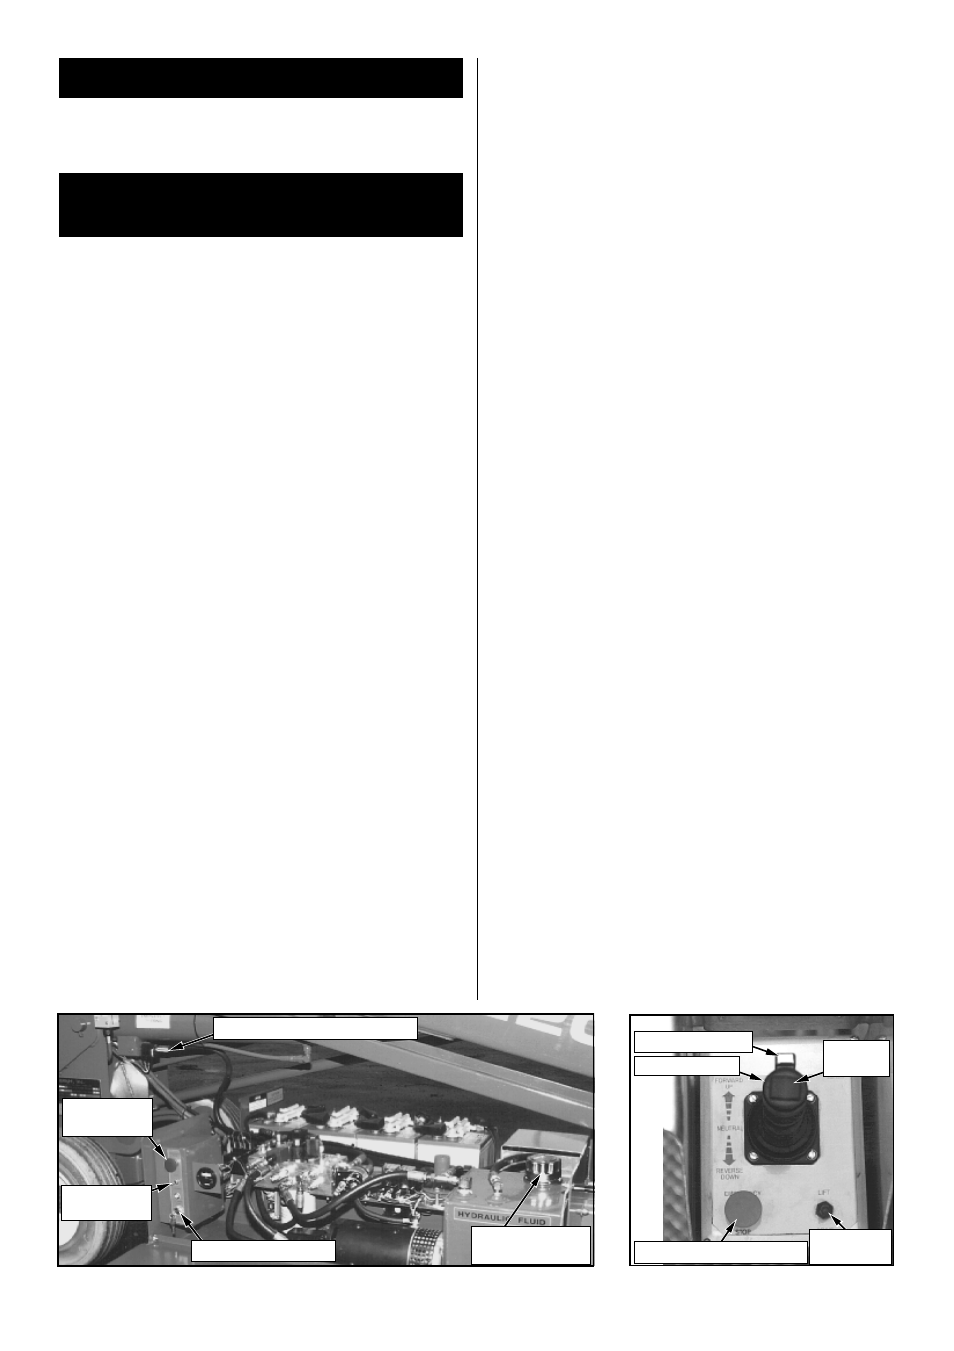 Introduction, Pre-operation and safety inspection | Snorkel SL20-sn5800-9299  User Manual | Page 3 / 32